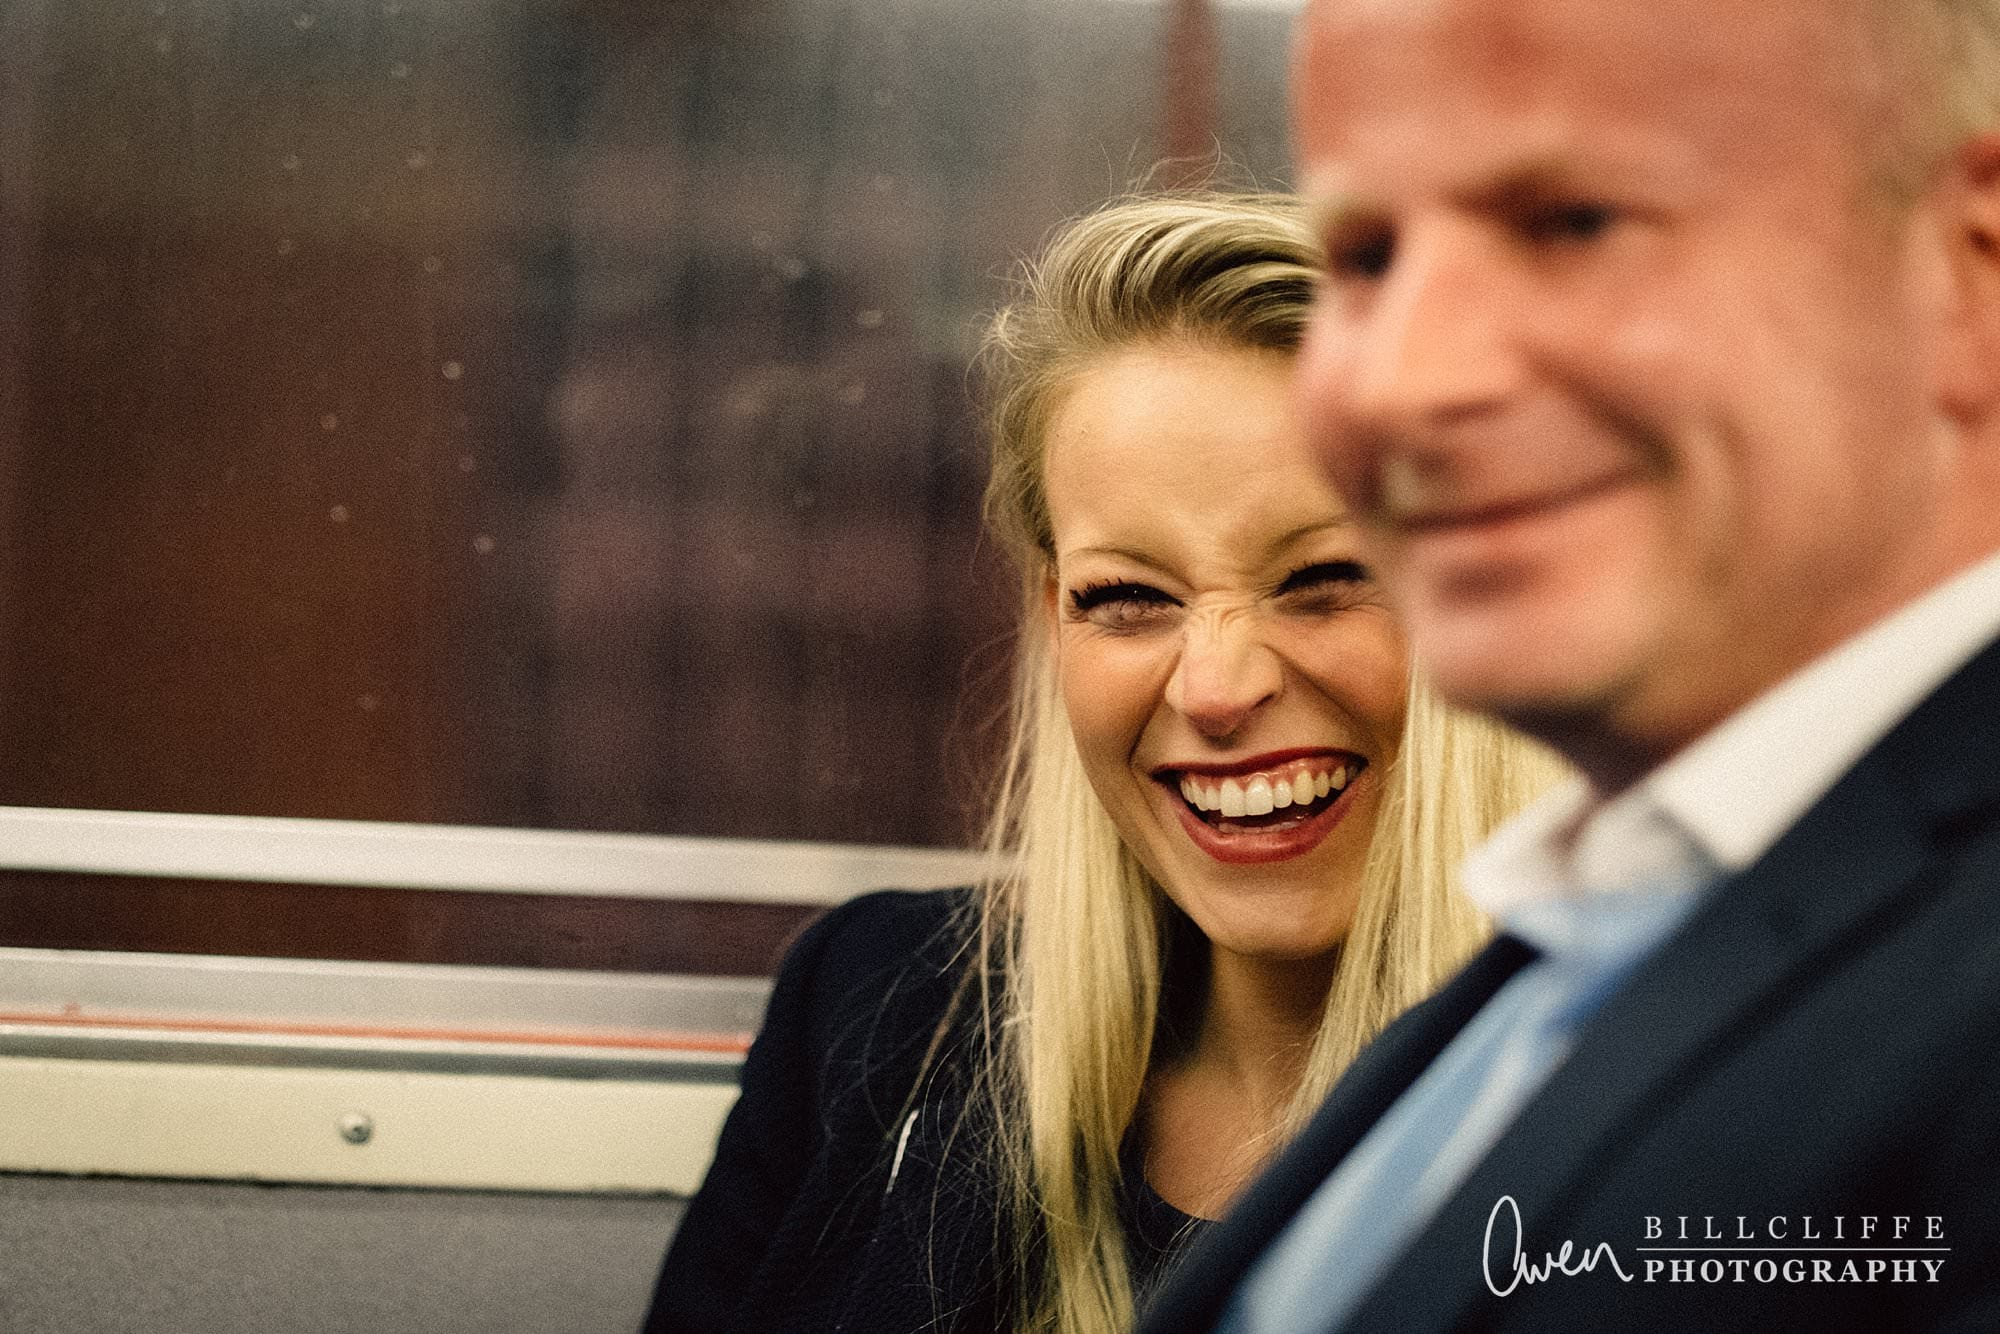 london engagement proposal photographer routemaster RE 019 - When Richard Proposed To Emma on a London Routemaster Bus